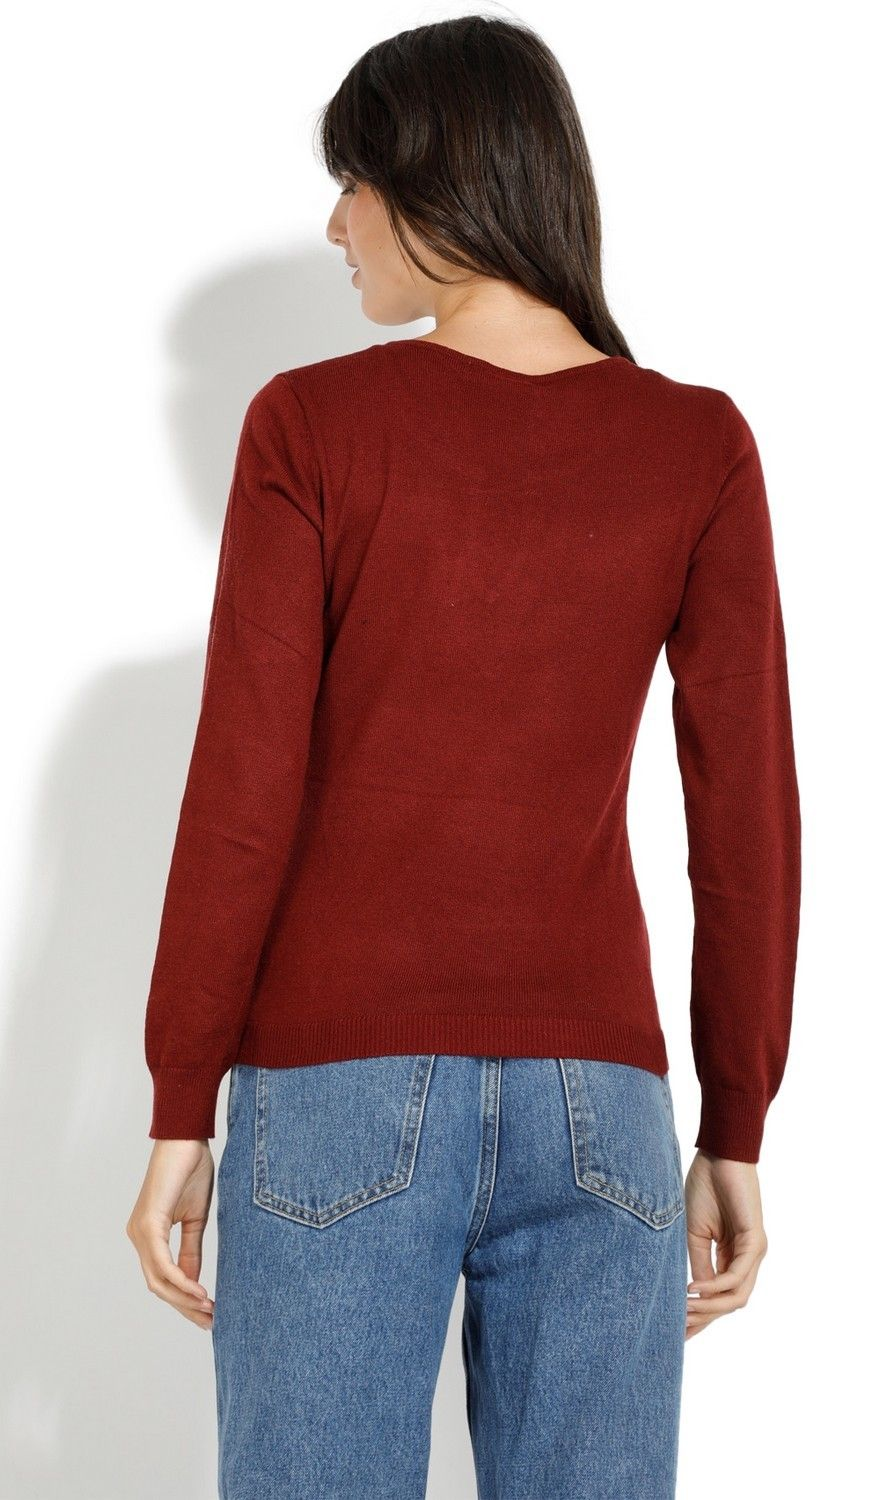 Assuili Open Collar Long Sleeve Sweater with Button in Maroon